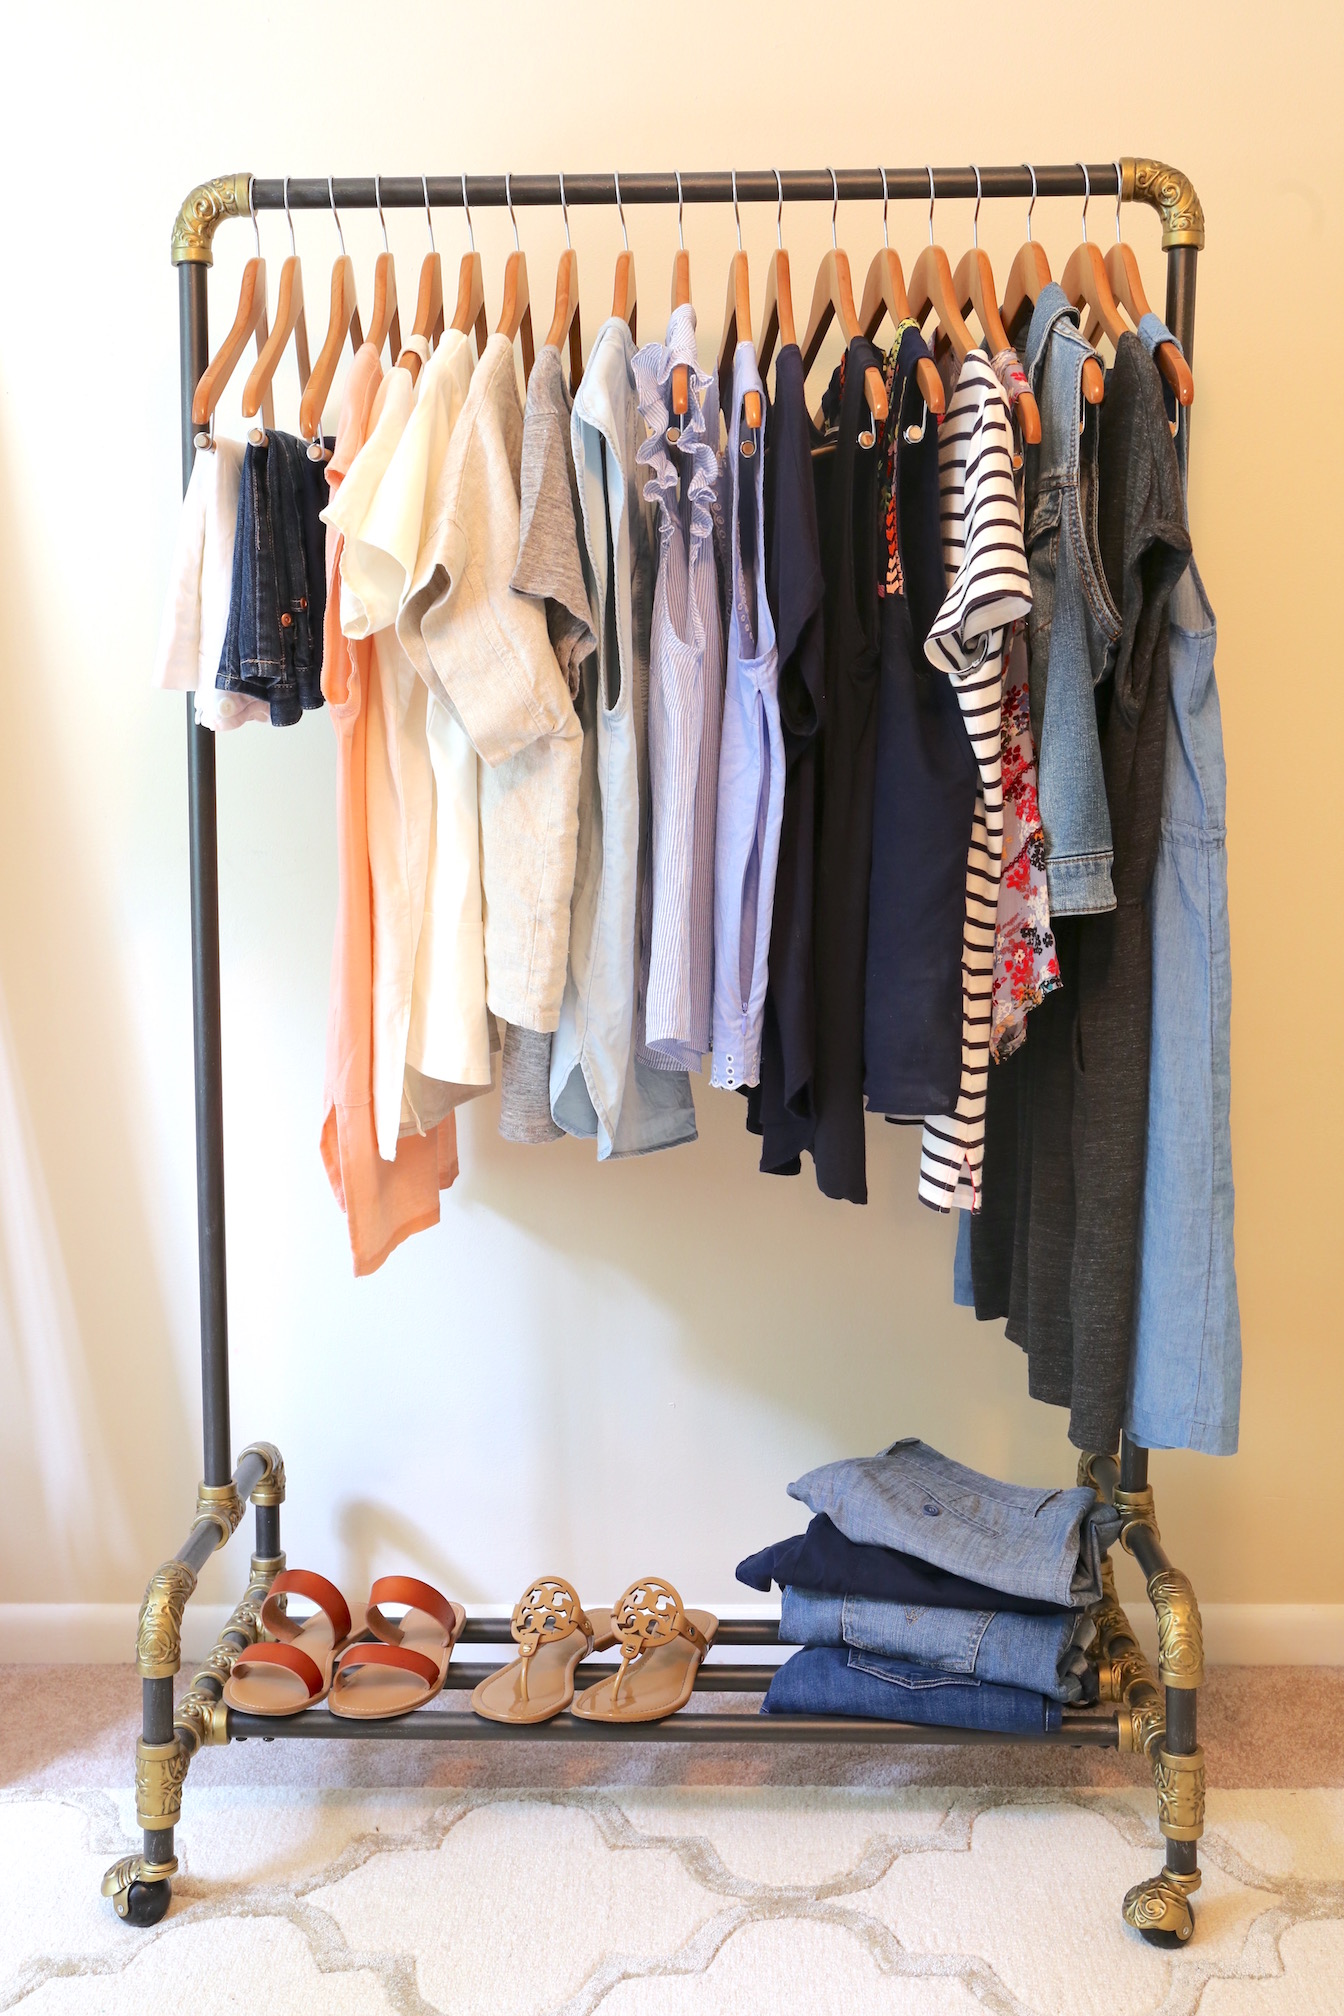 My Summer 2017 Capsule Wardrobe